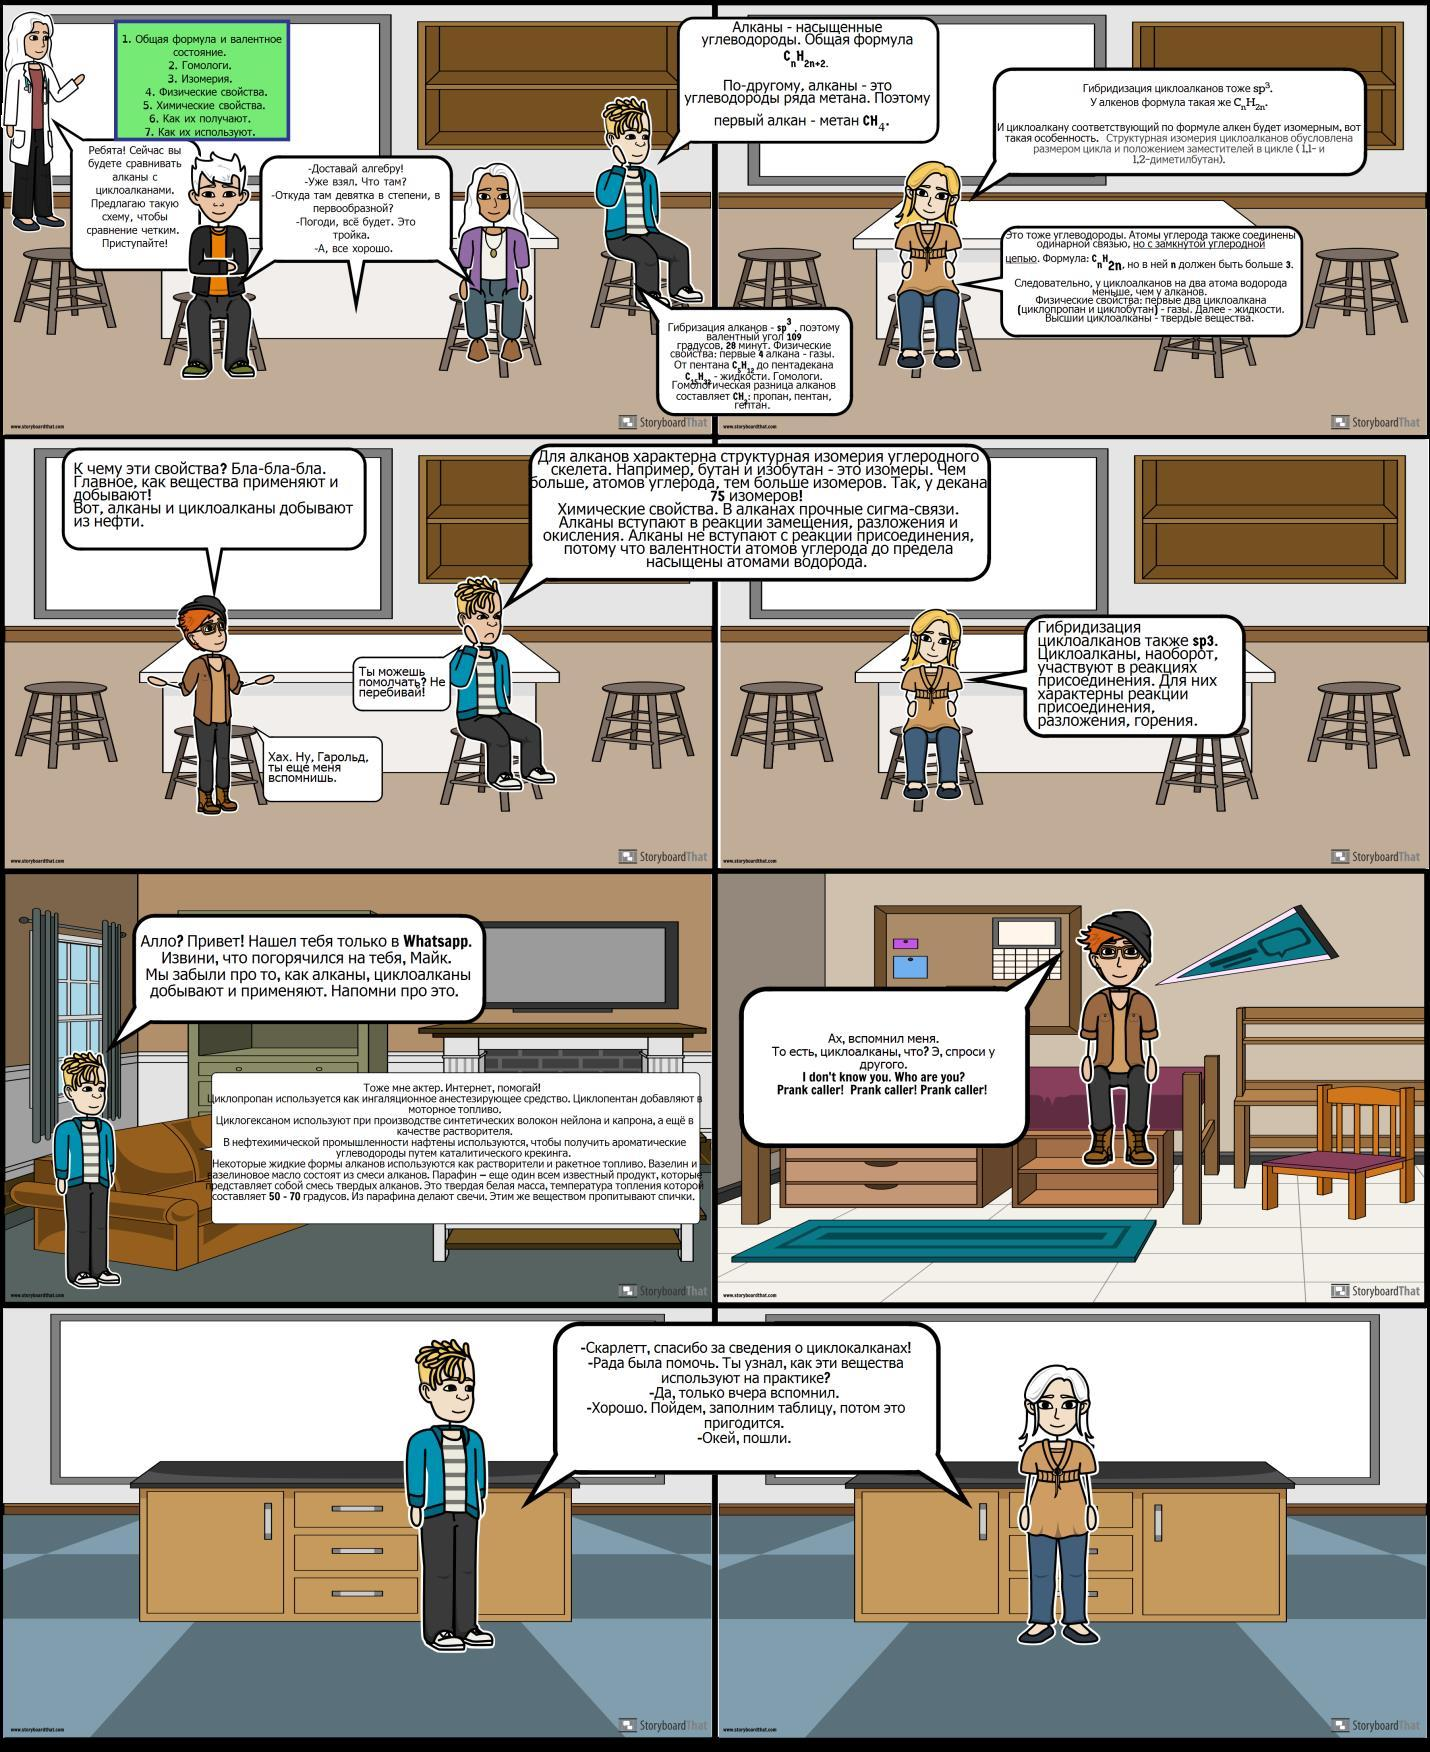 STEAM - AN APPROACH TO TEACHING CHEMISTRY ON THE UPDATED CONTENT OF EDUCATION (27-33)